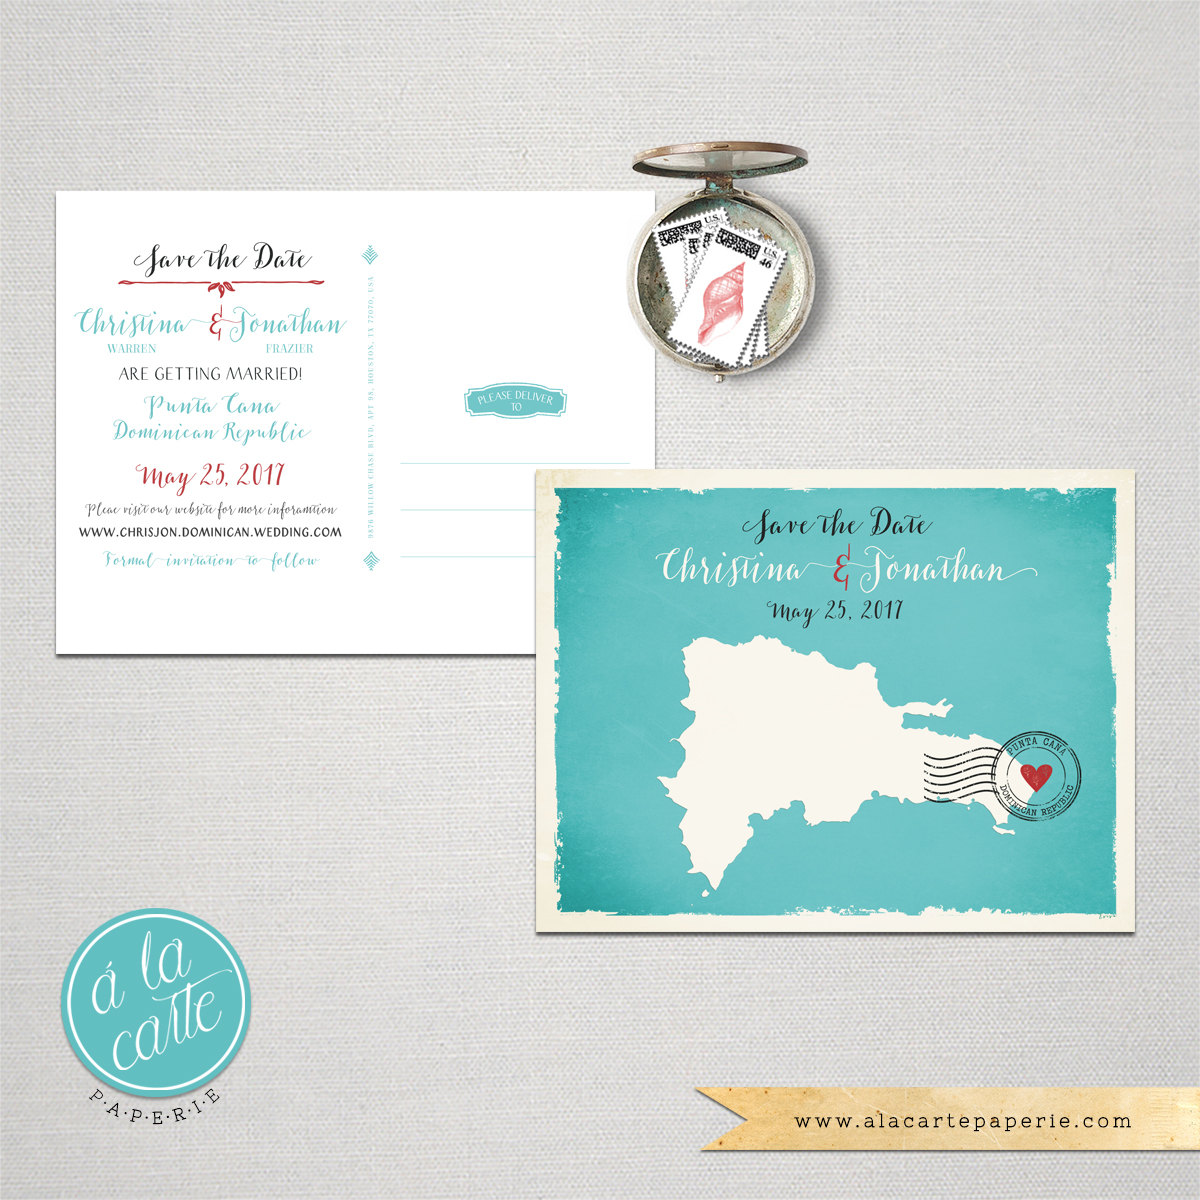 Turquoise clipart destination wedding #5